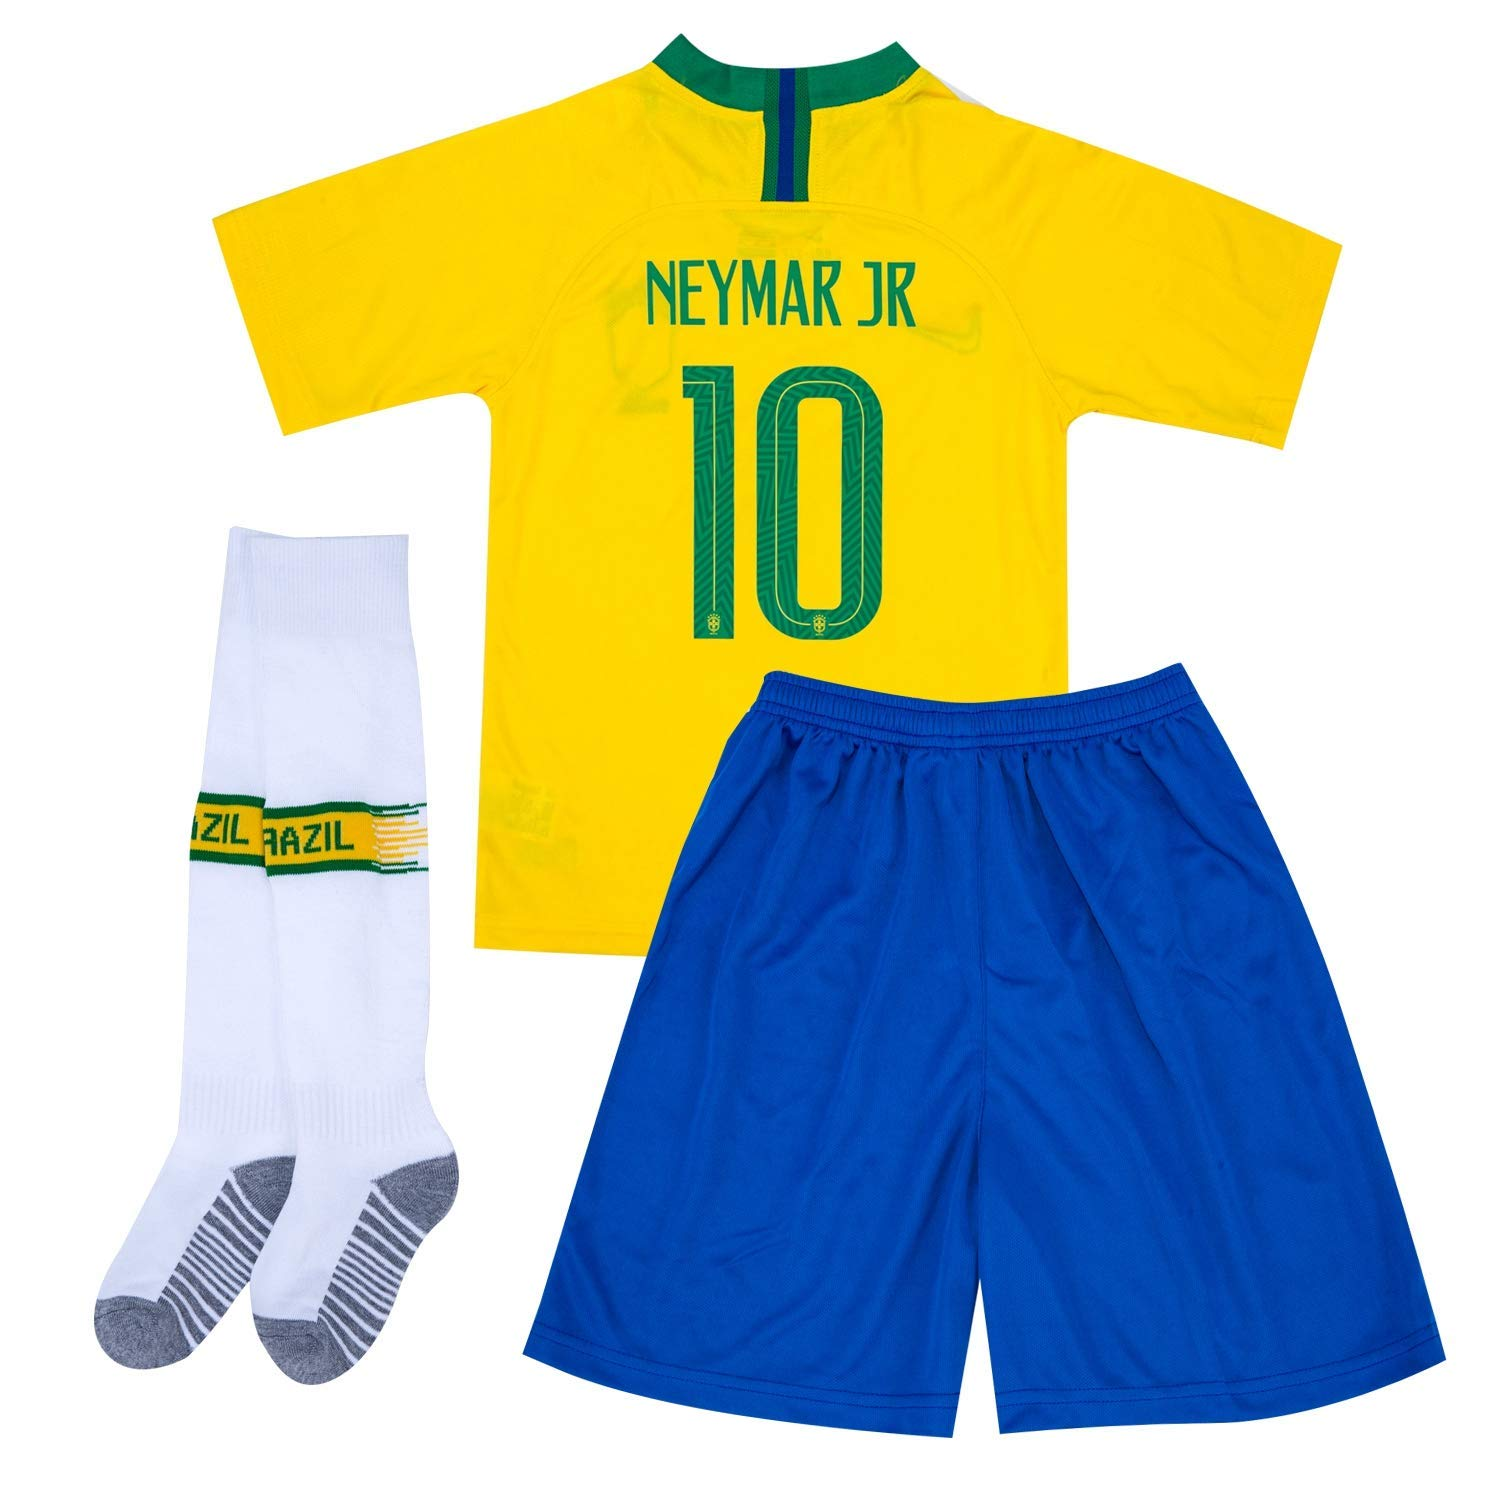 567b6310867 Get Quotations · AIYIZHU 2017-2018 Brazil Neymar 10 Kids Soccer Shorts  Socks Yellow